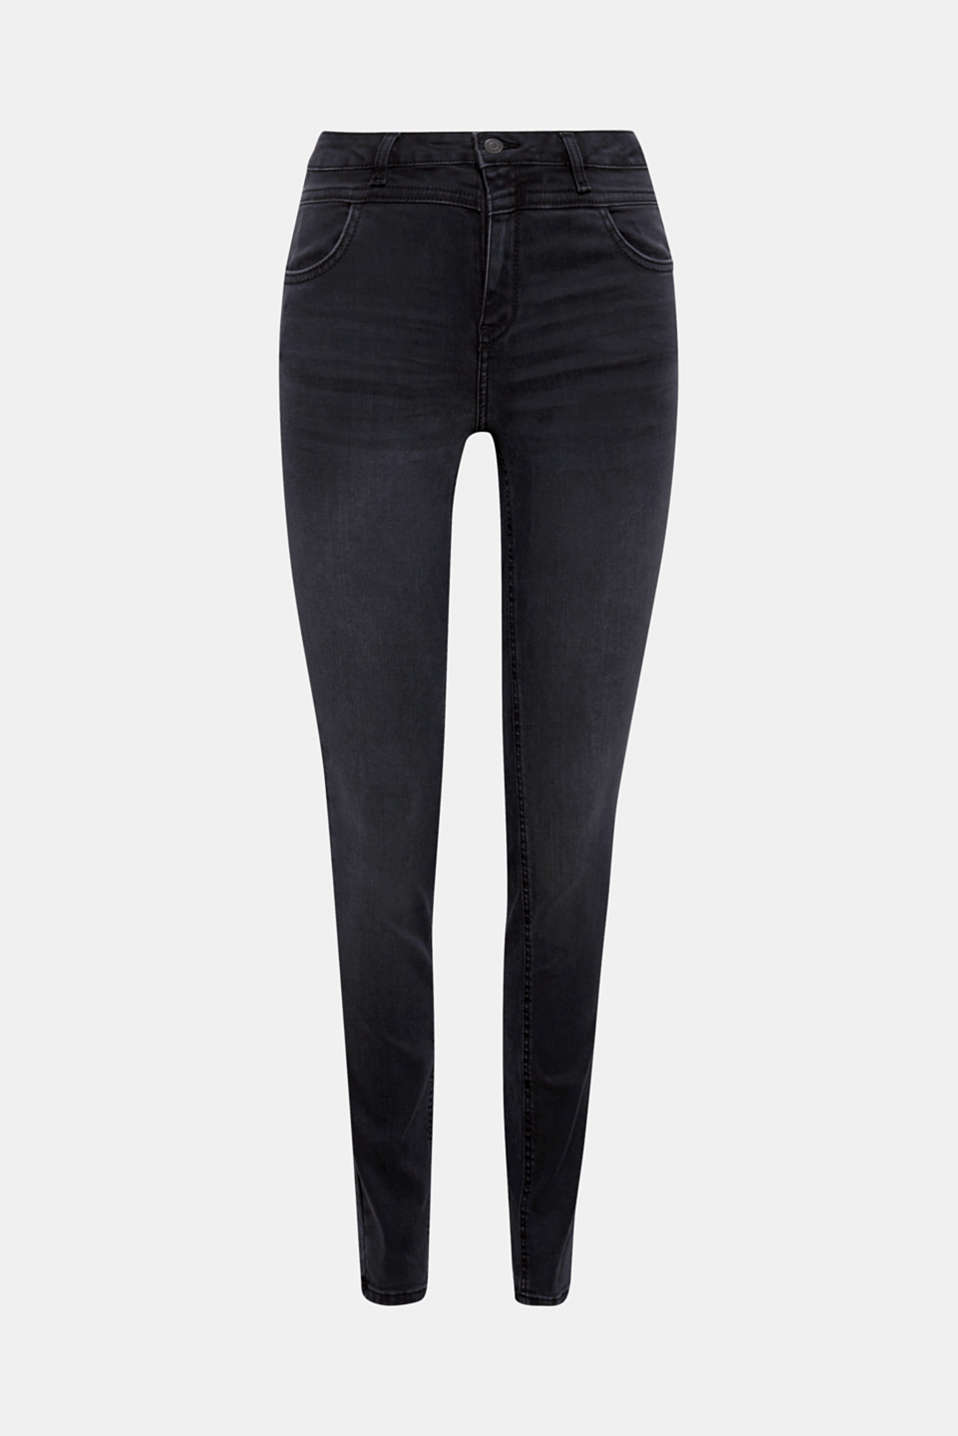 Creates a sensational silhouette: these shaping jeans in a stylish black denim with four pockets and a high waistband!